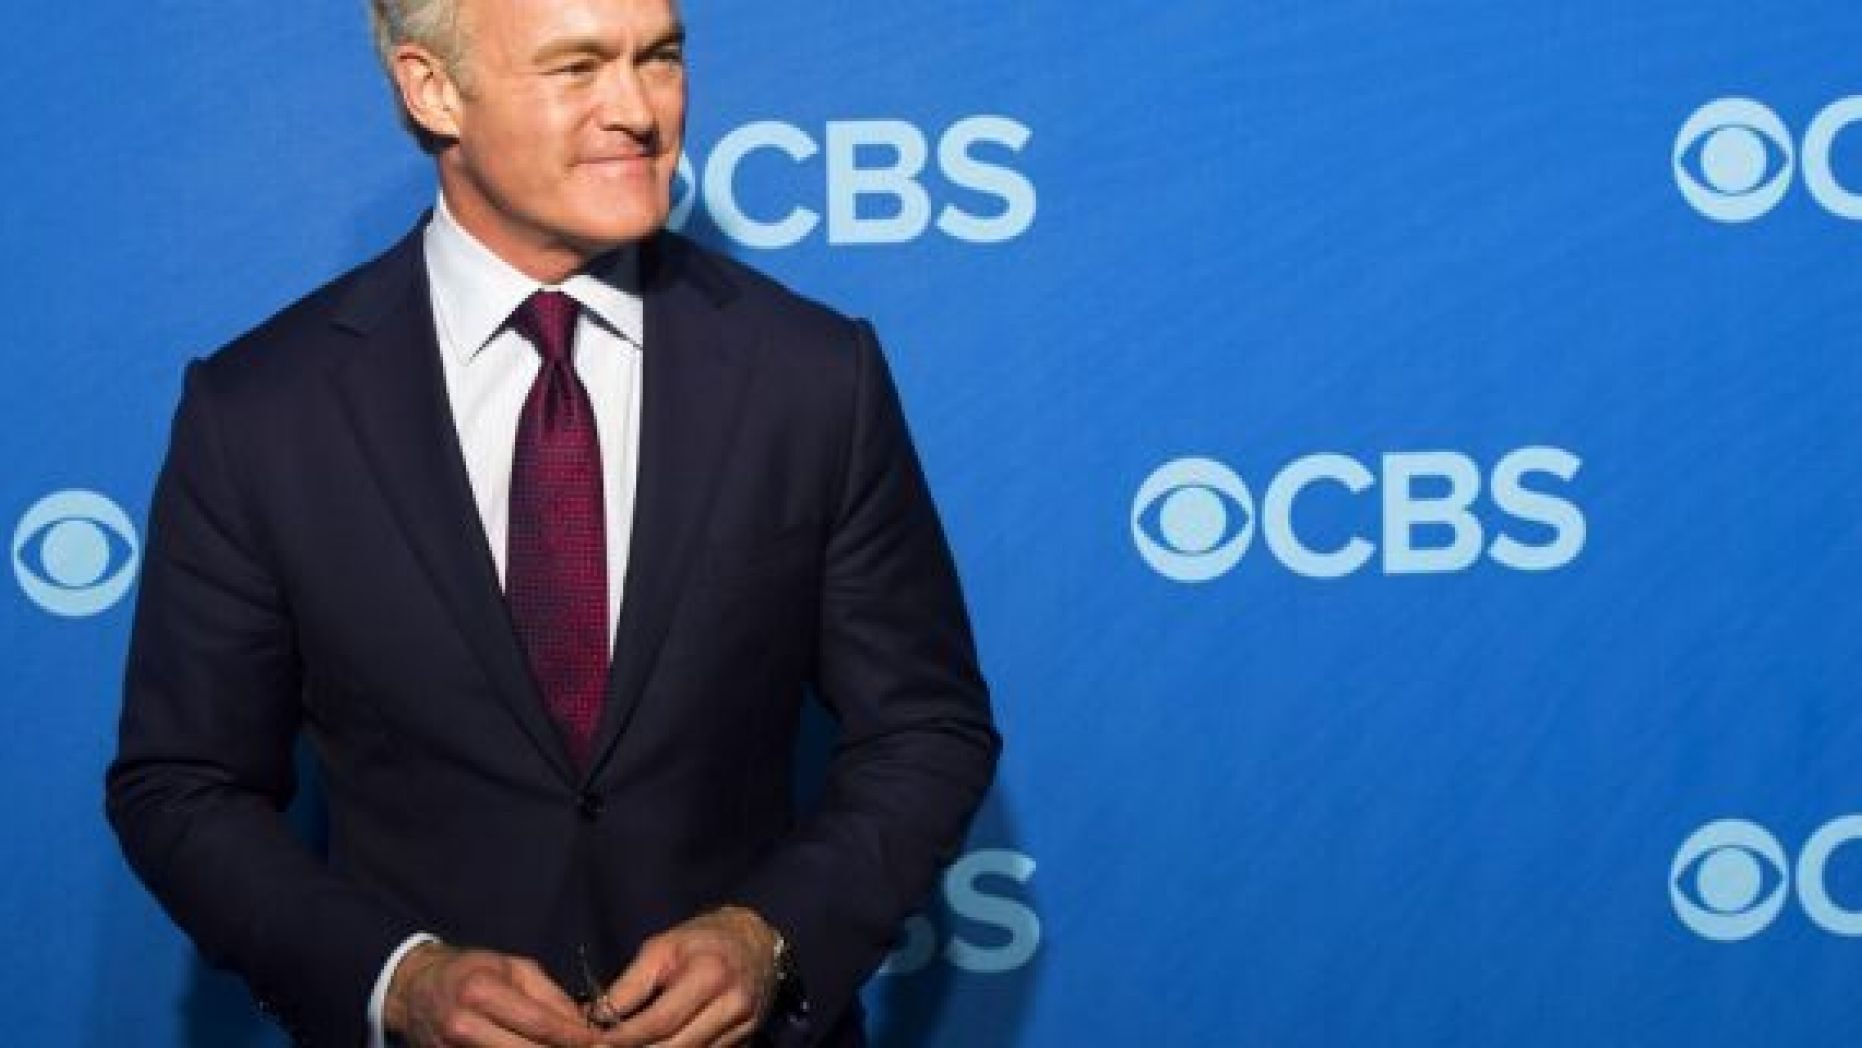 FILE: Scott Pelley attending the CBS Upfront in New York.